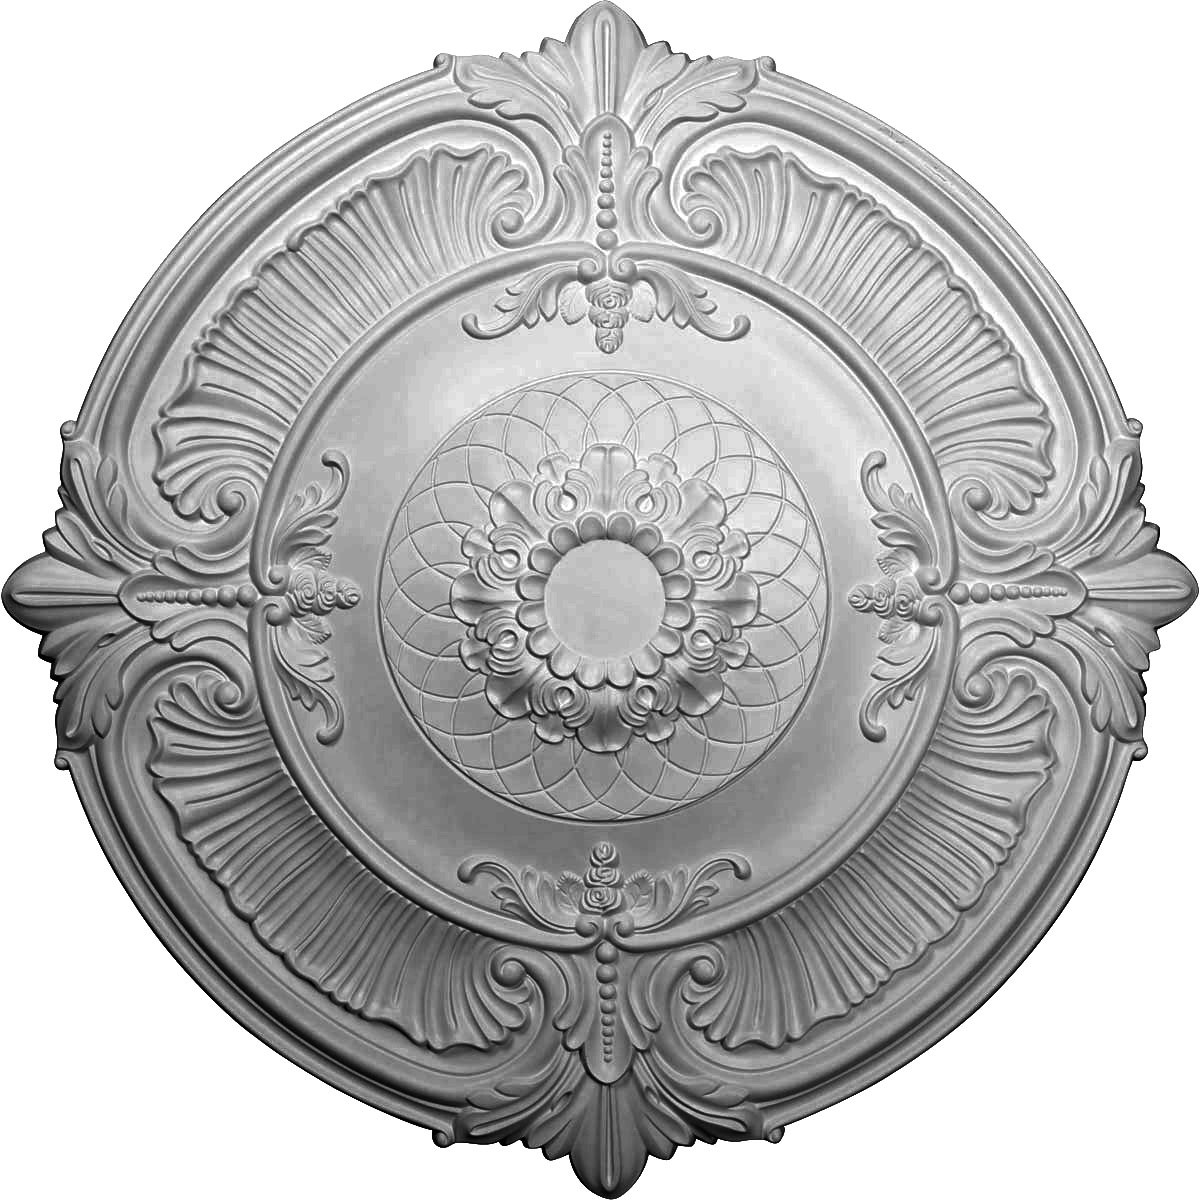 """EM-CM39AT - 39 1/2""""OD x 2 1/2""""P Attica Ceiling Medallion (Fits Canopies up to 3 3/4"""")"""